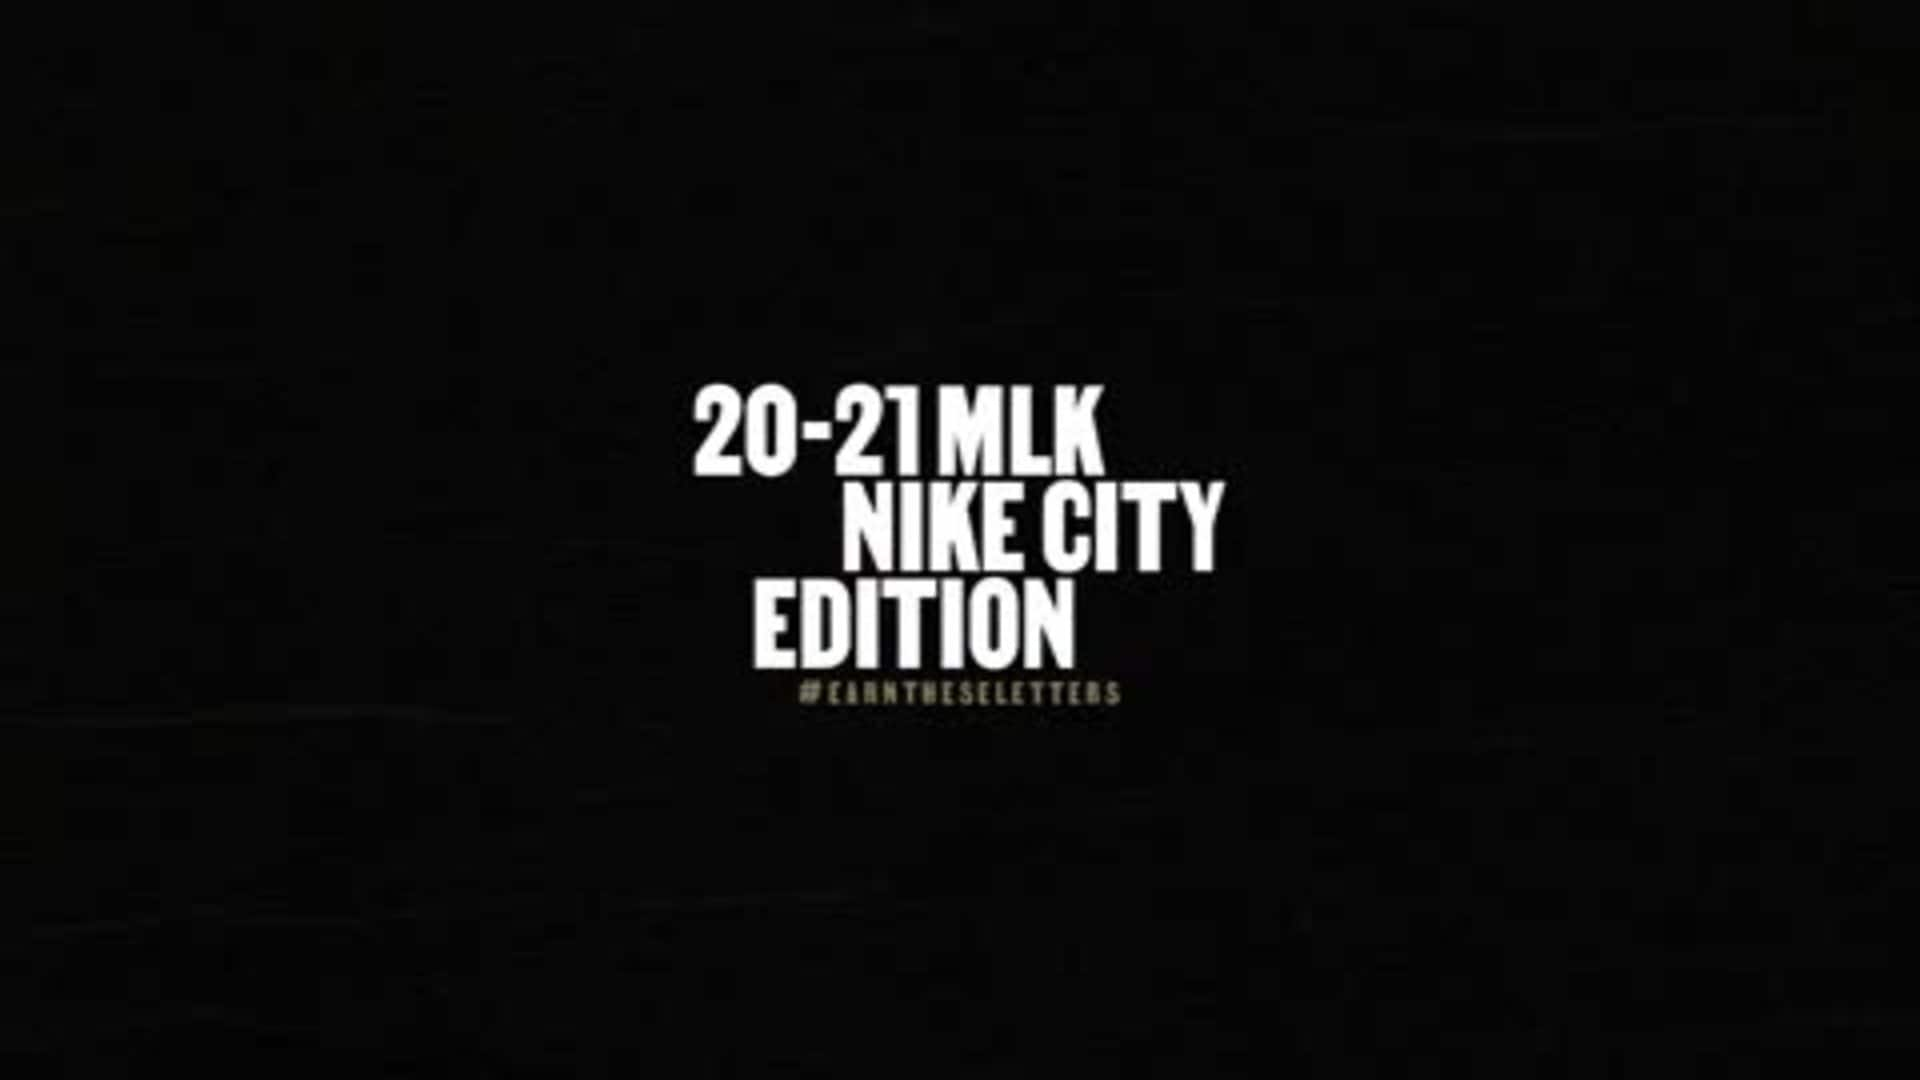 2020-21 MLK Nike City Edition Details